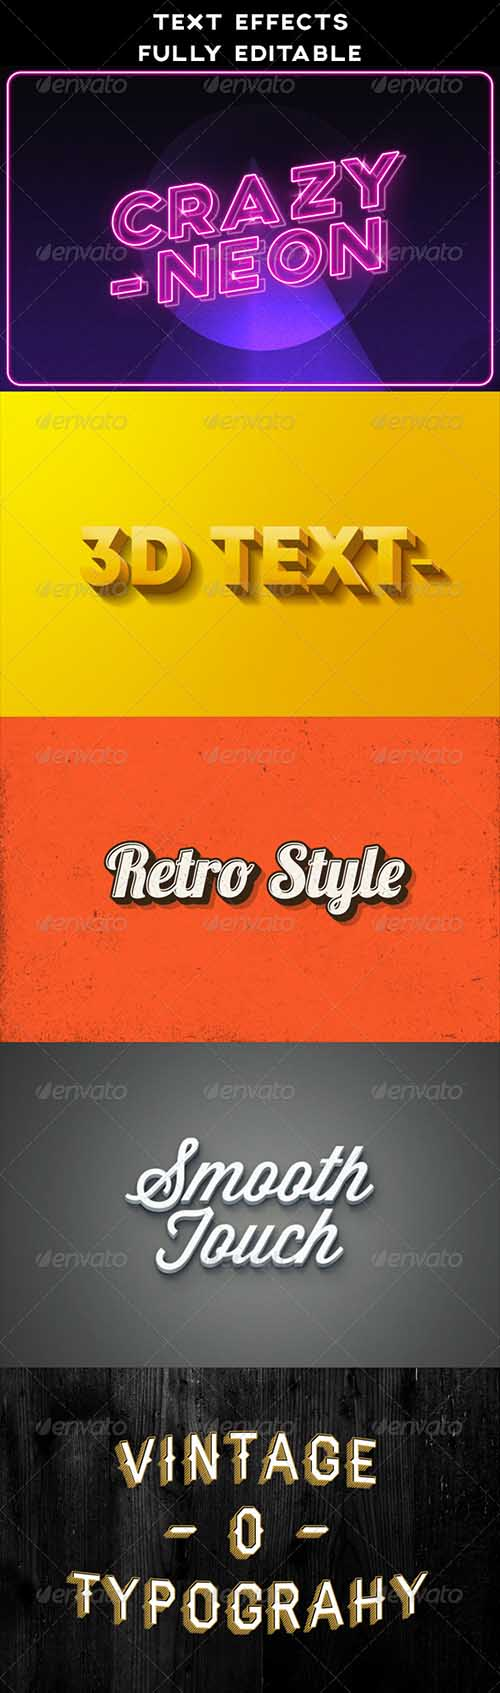 Text Effects | Vintage | 3D | Retro | Neon 8485886 » Free